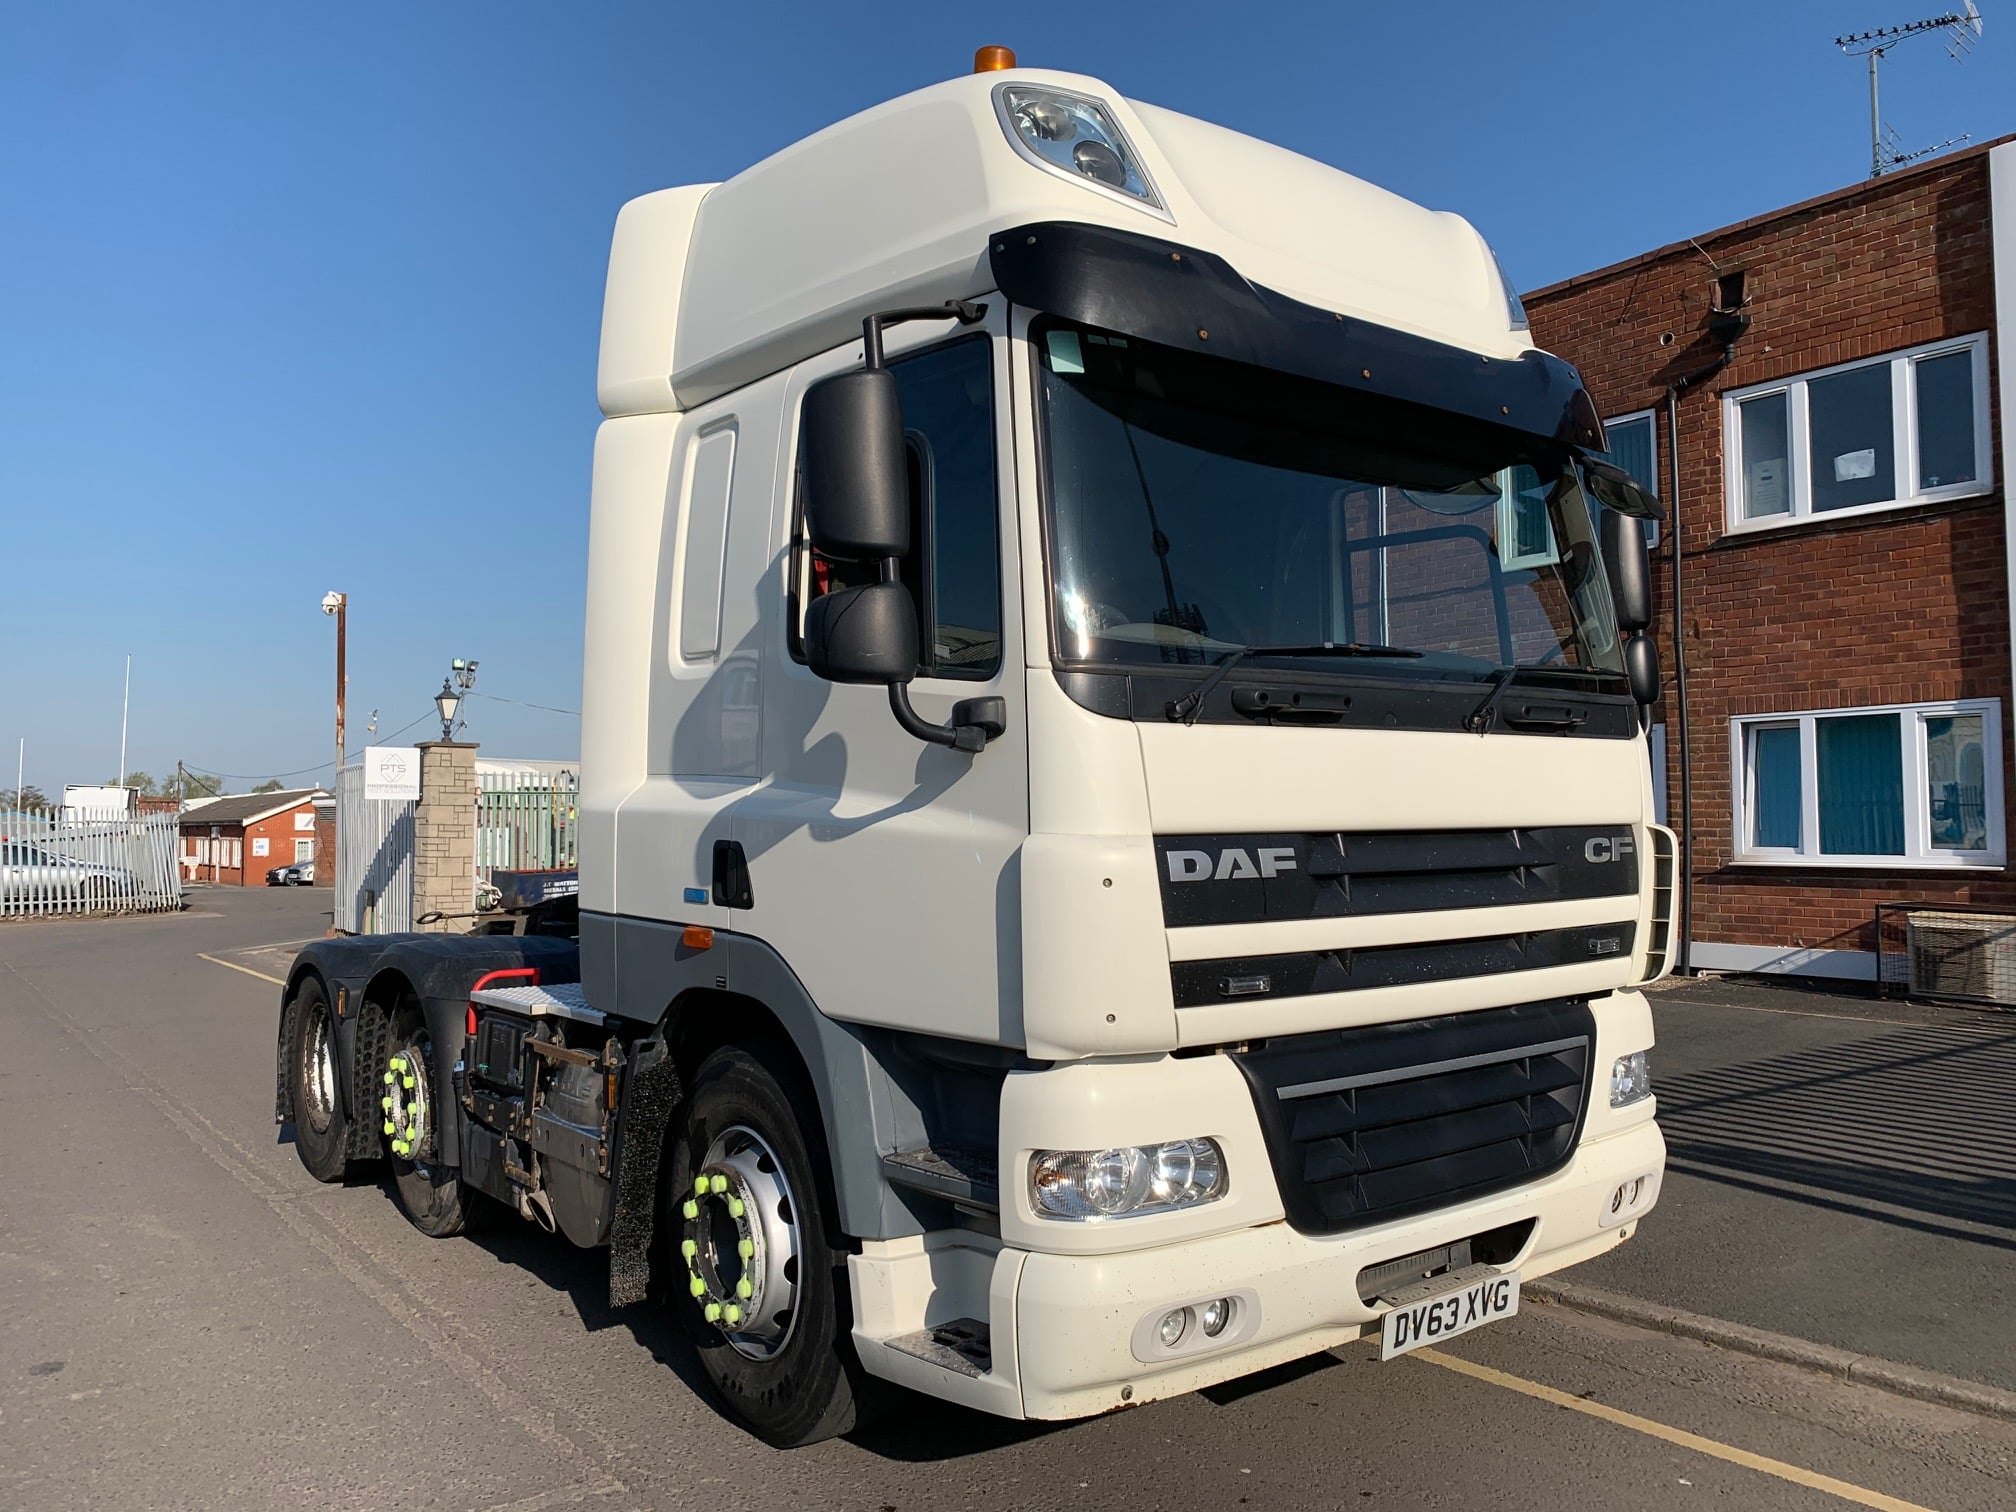 2013 (63) DAF CF. 460bhp, Euro 5, Space Twin Sleeper Cab, Automatic Gearbox, Aluminium Catwalk Infill Panel, Steering Wheel Controls, Mid- Lift Axle, PTO, Phone Kit, Air Con, Xtra Comfort Mattress, 597,000km, Warranty Available.